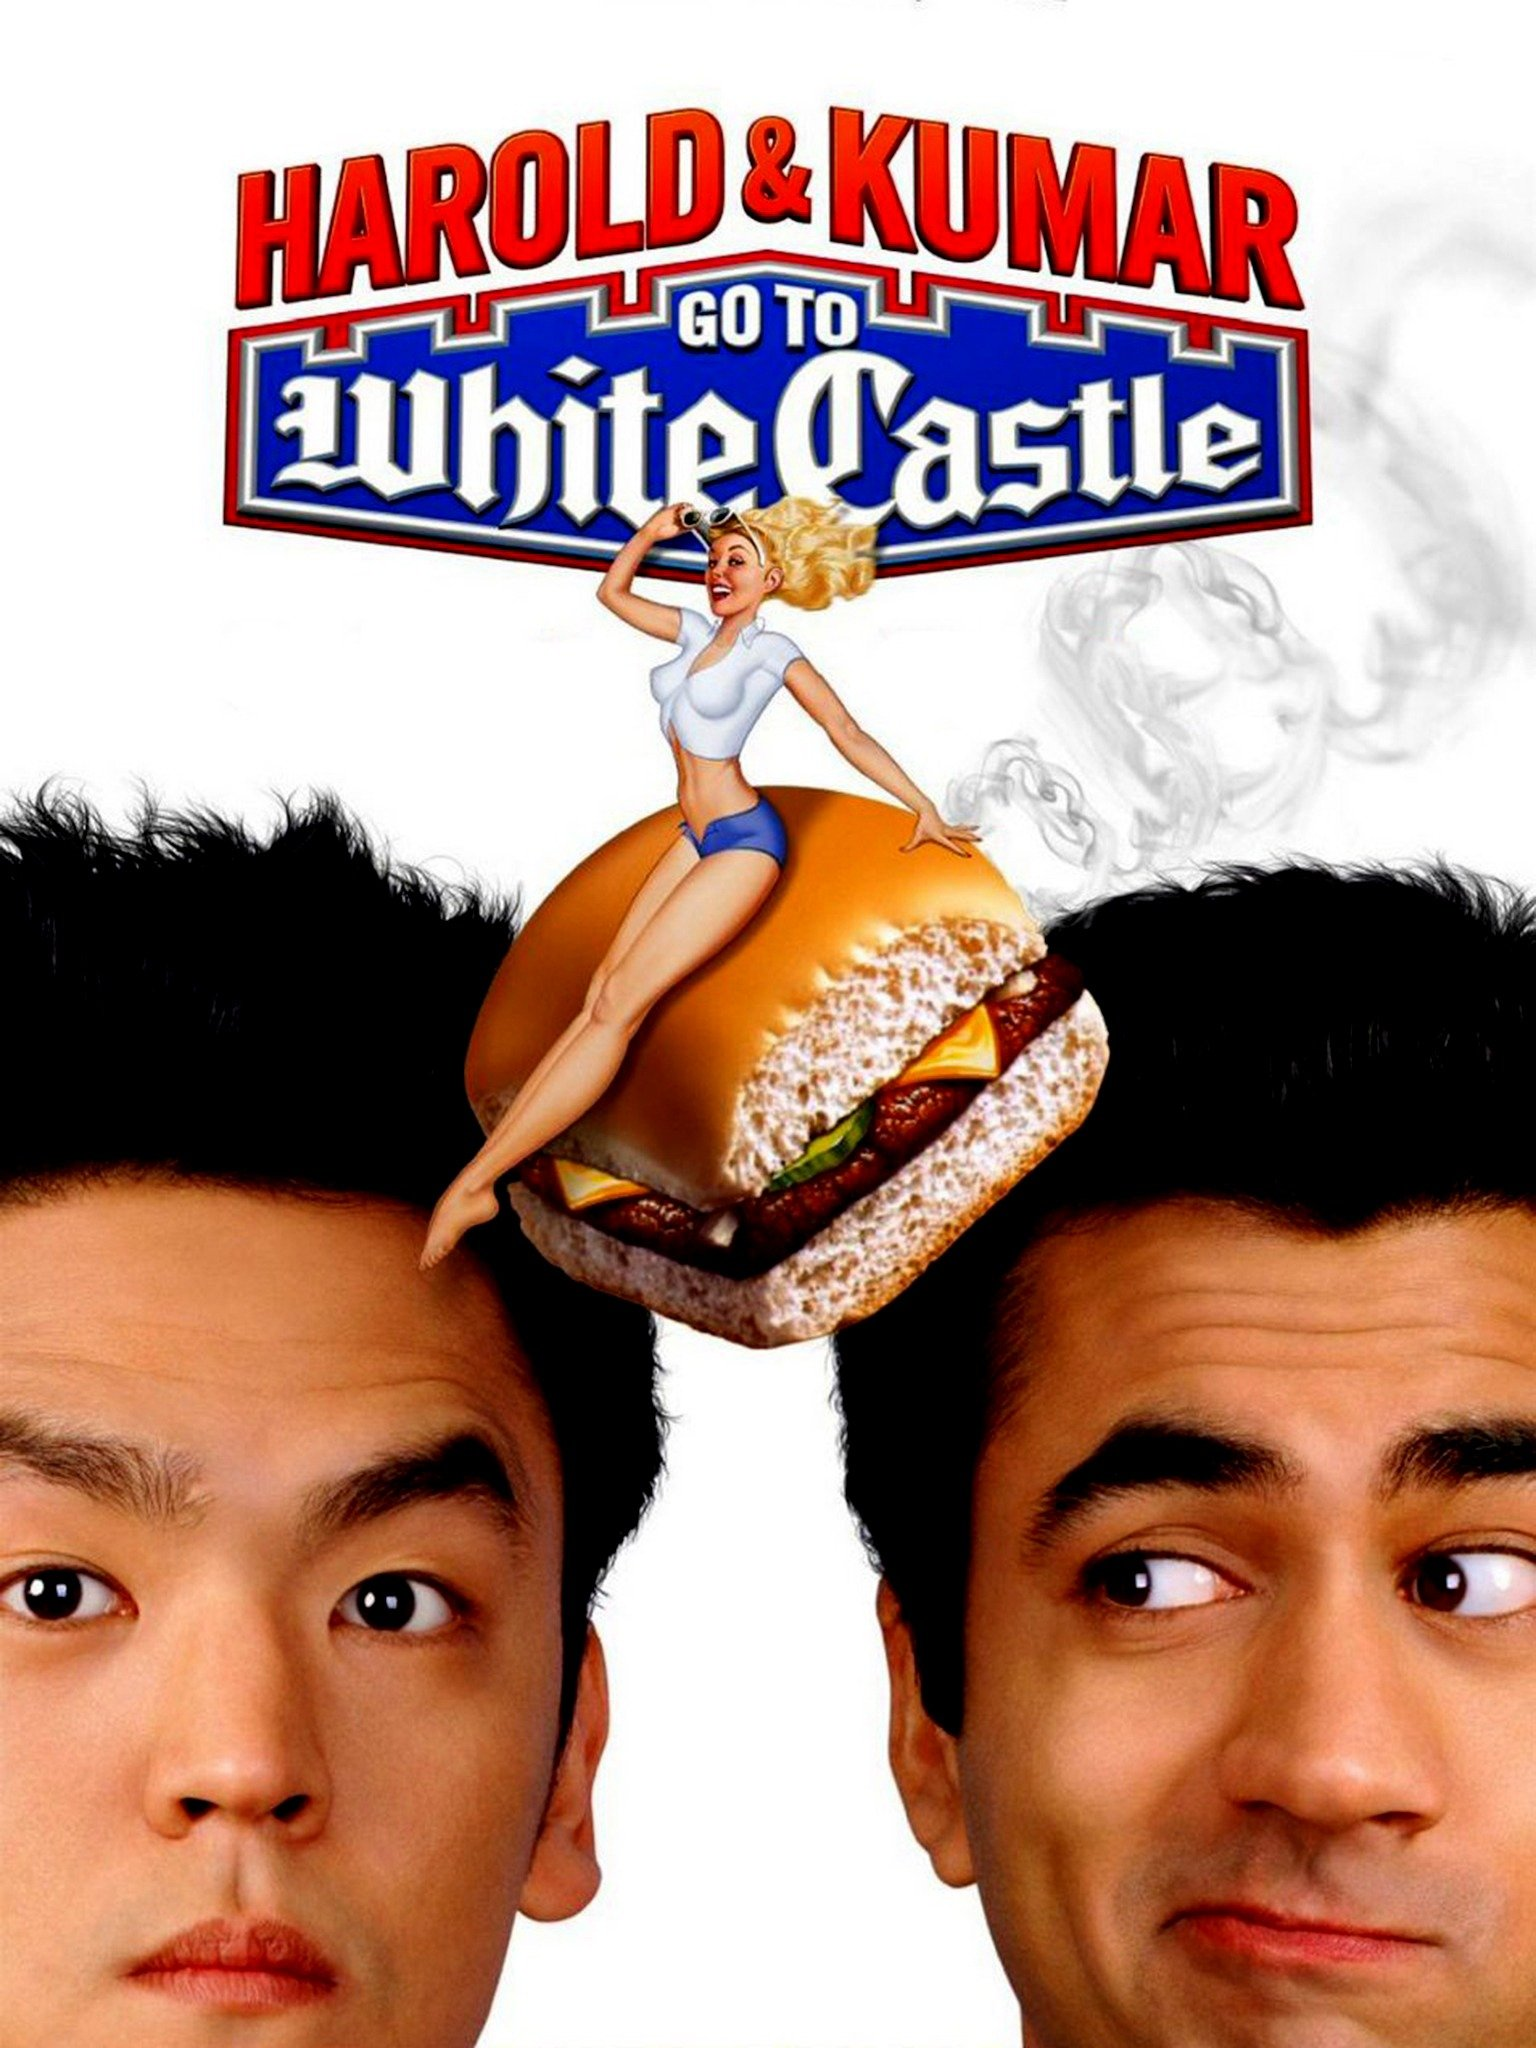 Harold__Kumar_Go_to_White_Castle_2004_7432699.jpg